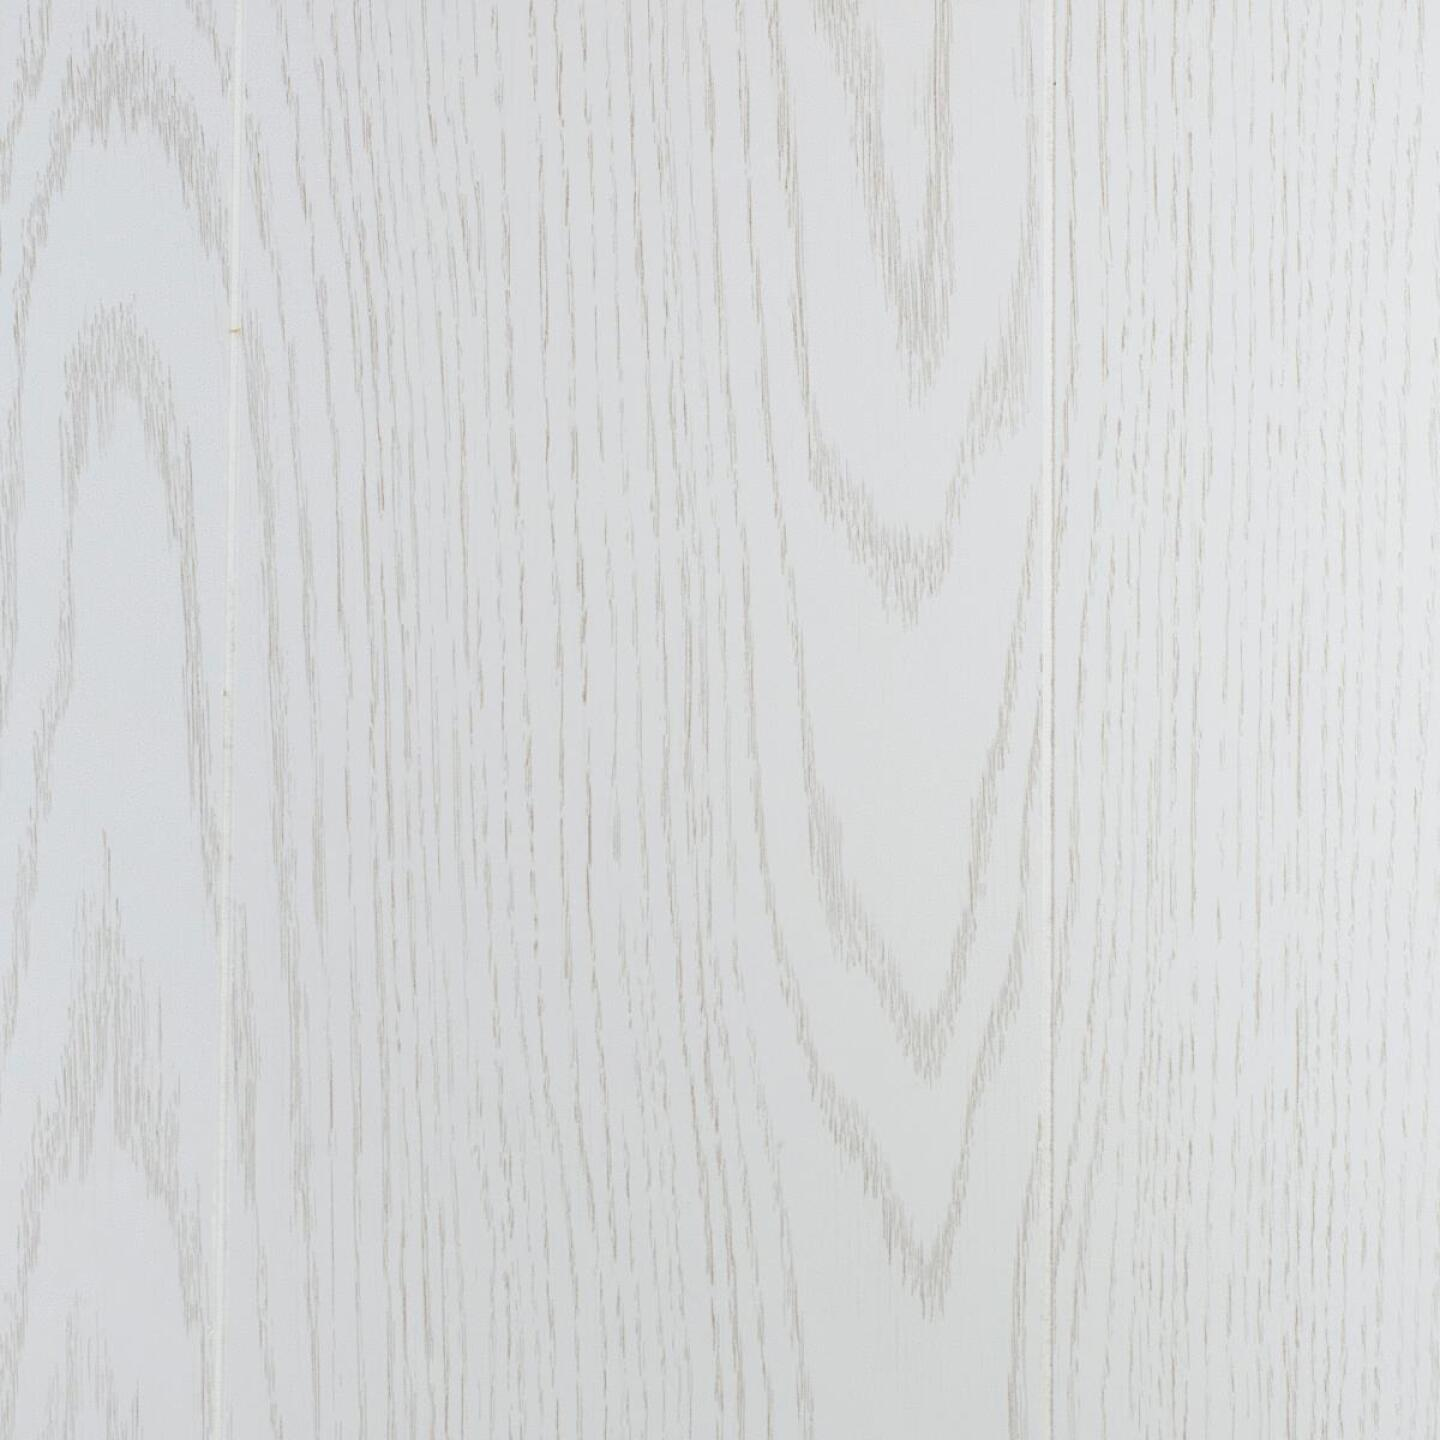 Global Product Sourcing 4 Ft. x 8 Ft. x 1/4 In. Symphony Random Groove Profile Wall Paneling Image 1